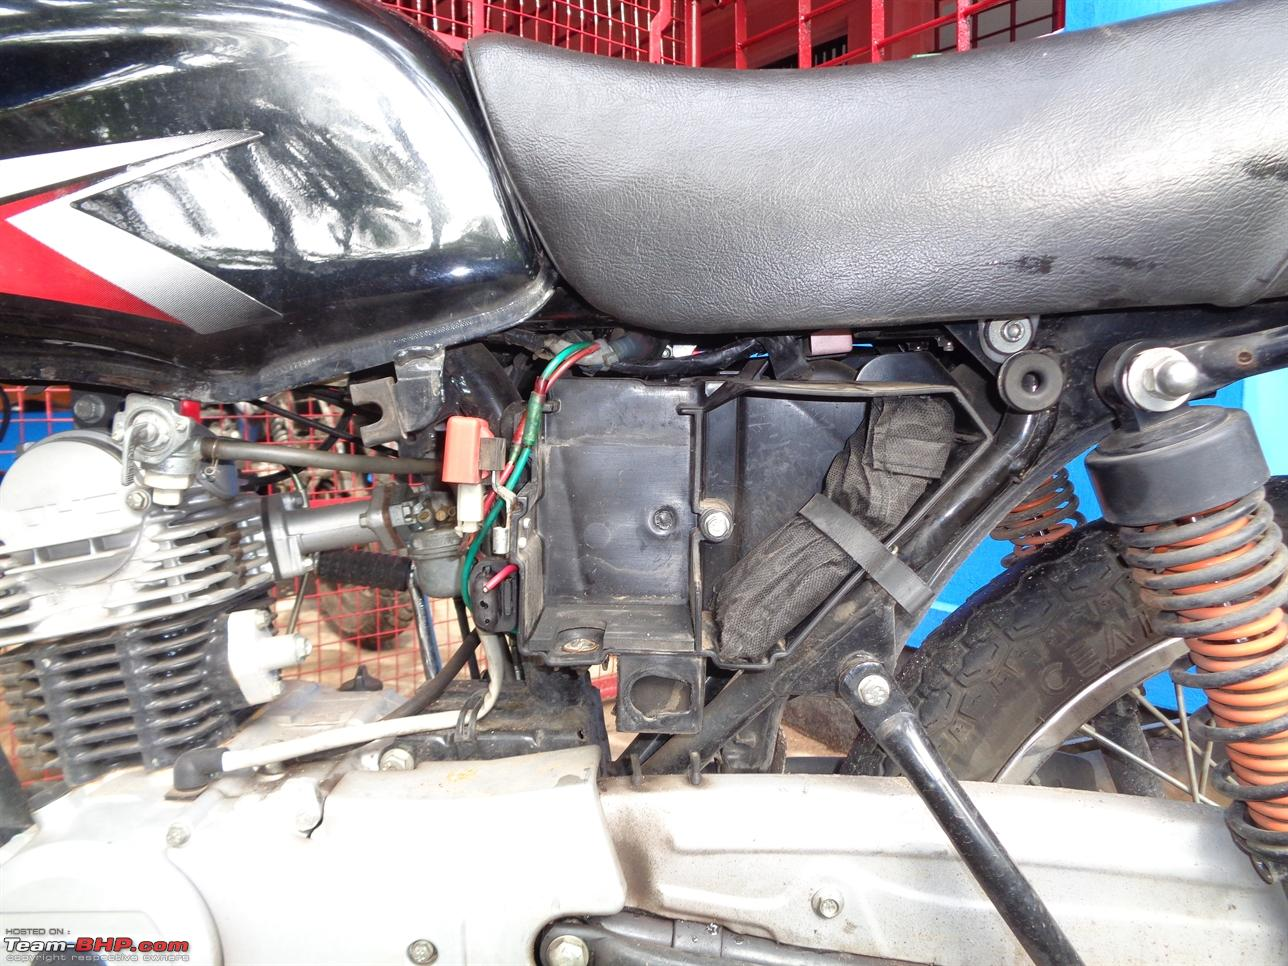 hight resolution of diy eliminating motorcycle battery adding a capacitor dsc00088 jpg